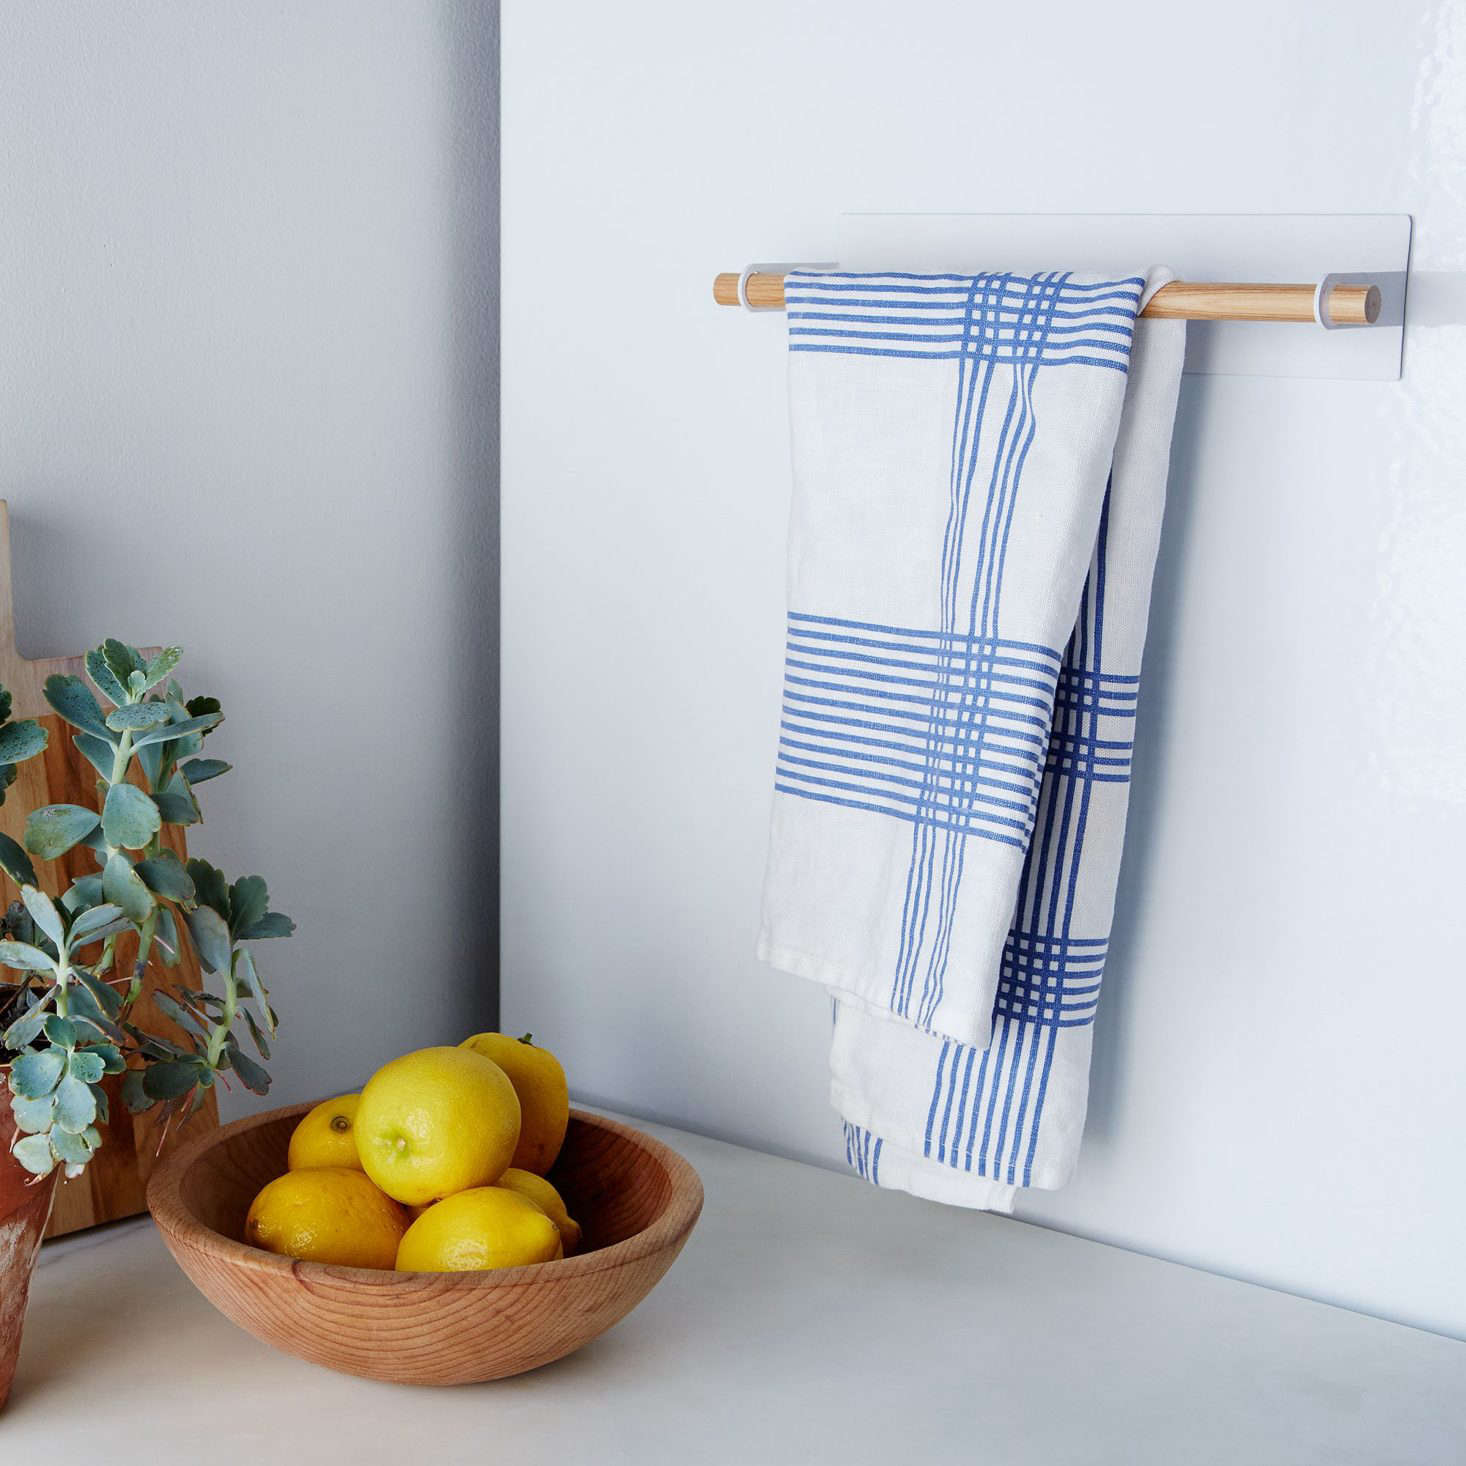 10 Ingenious (and Inexpensive!) Small Storage Products from Japan ...